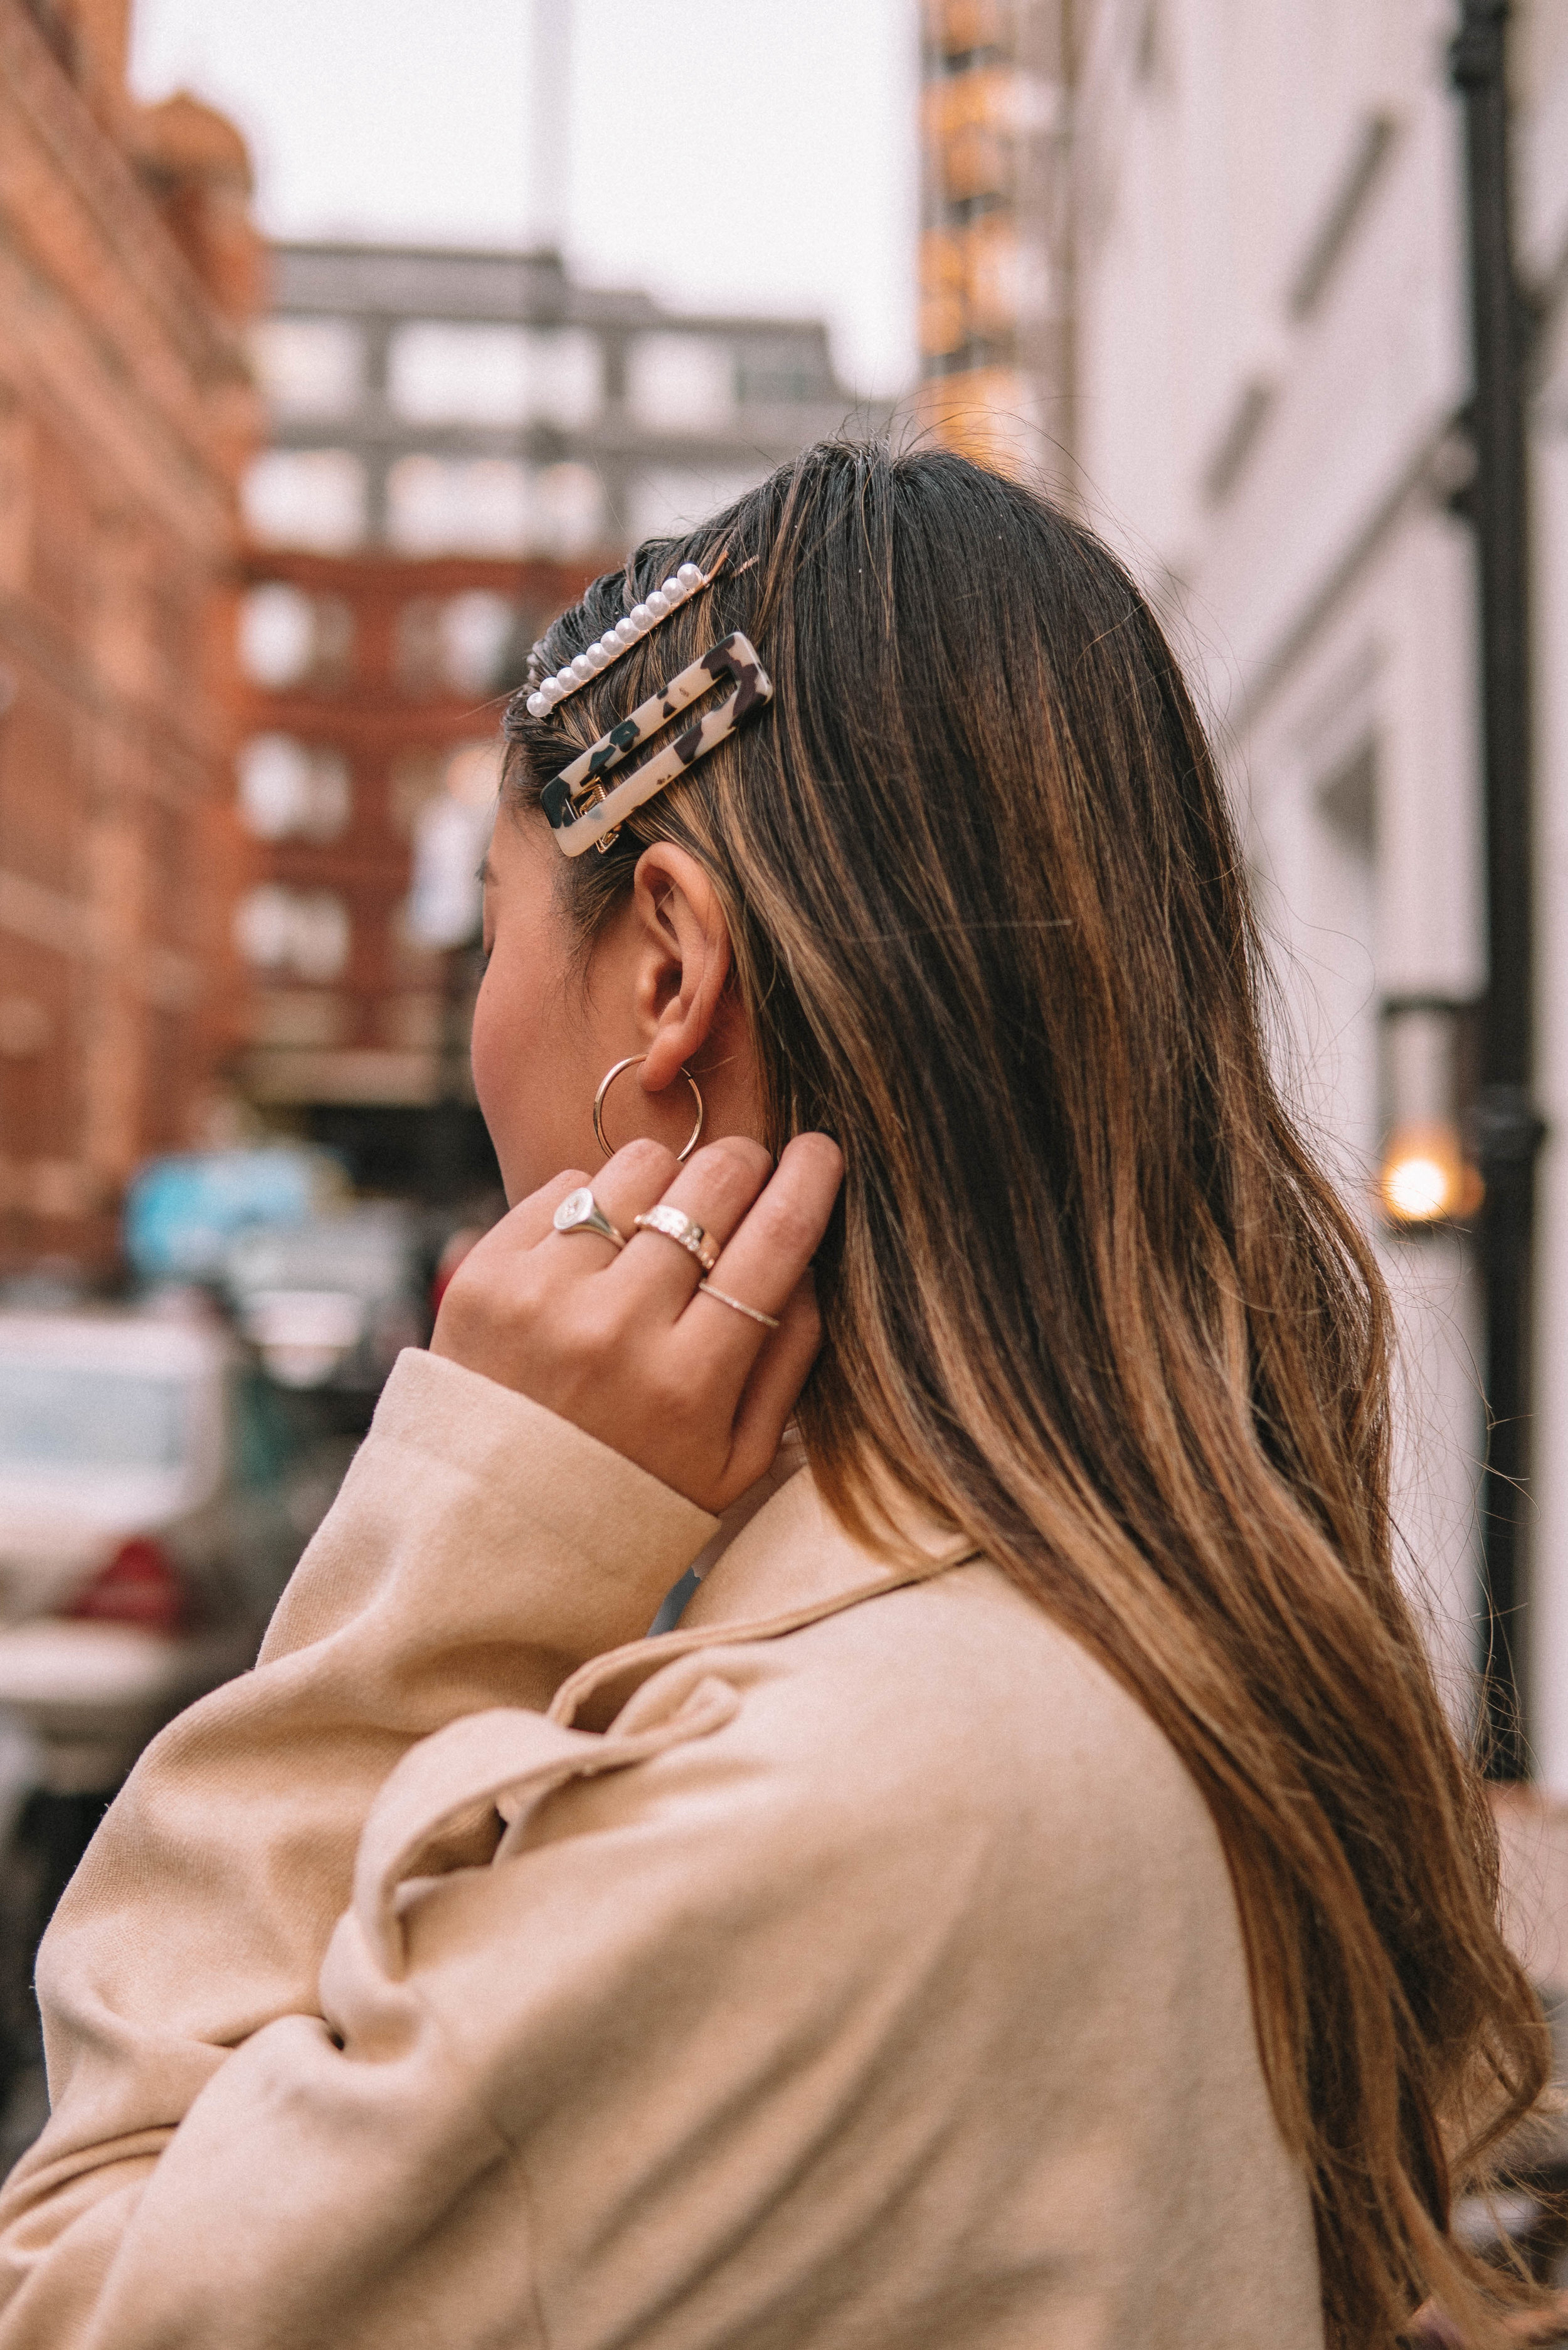 Seeing hair clips come back into our daily styling makes me so happy. Reminding me of my younger days where all I wanted was braids and clips. -